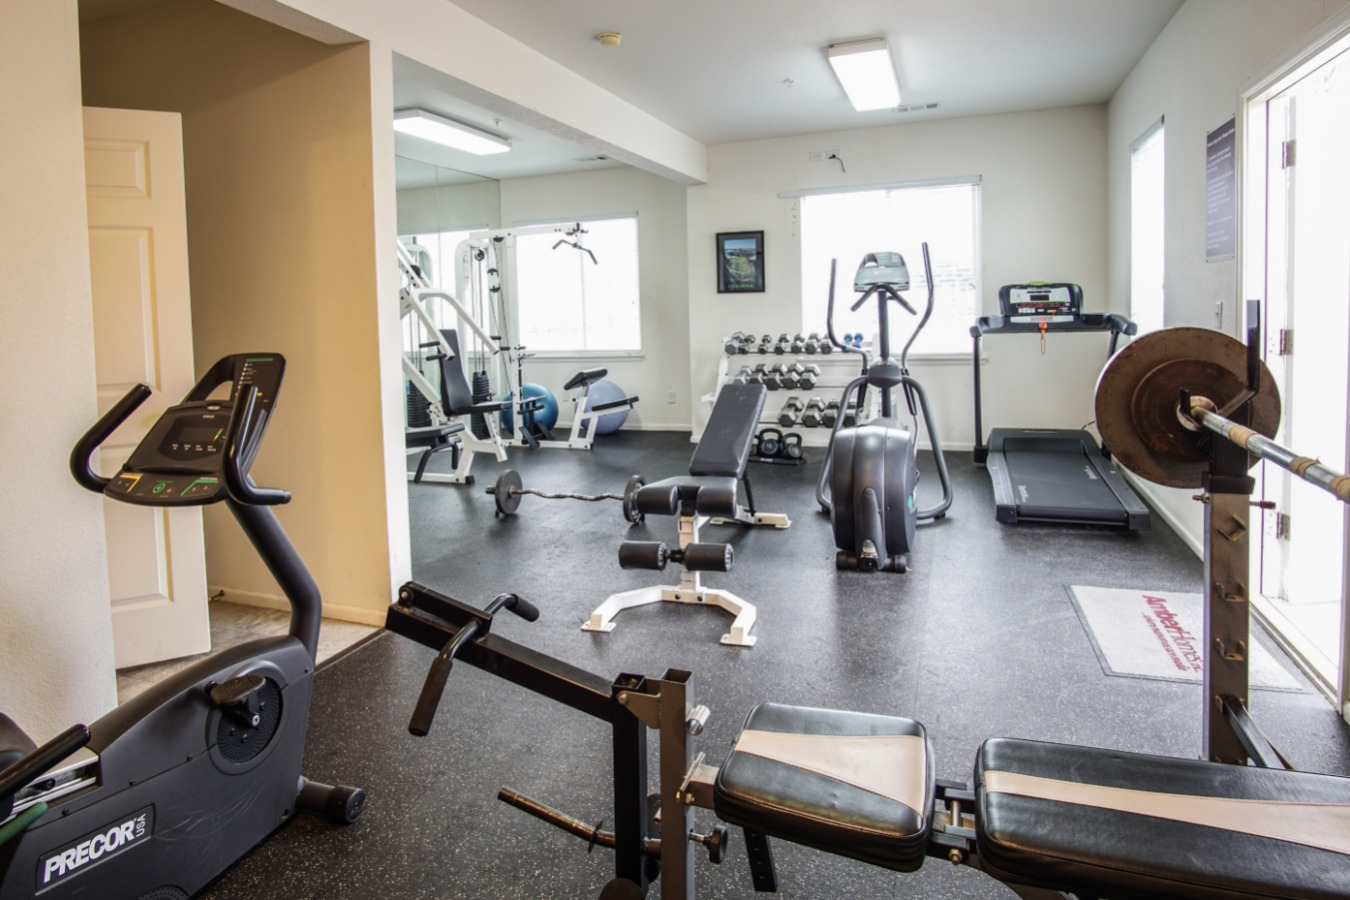 Large and bright workout room